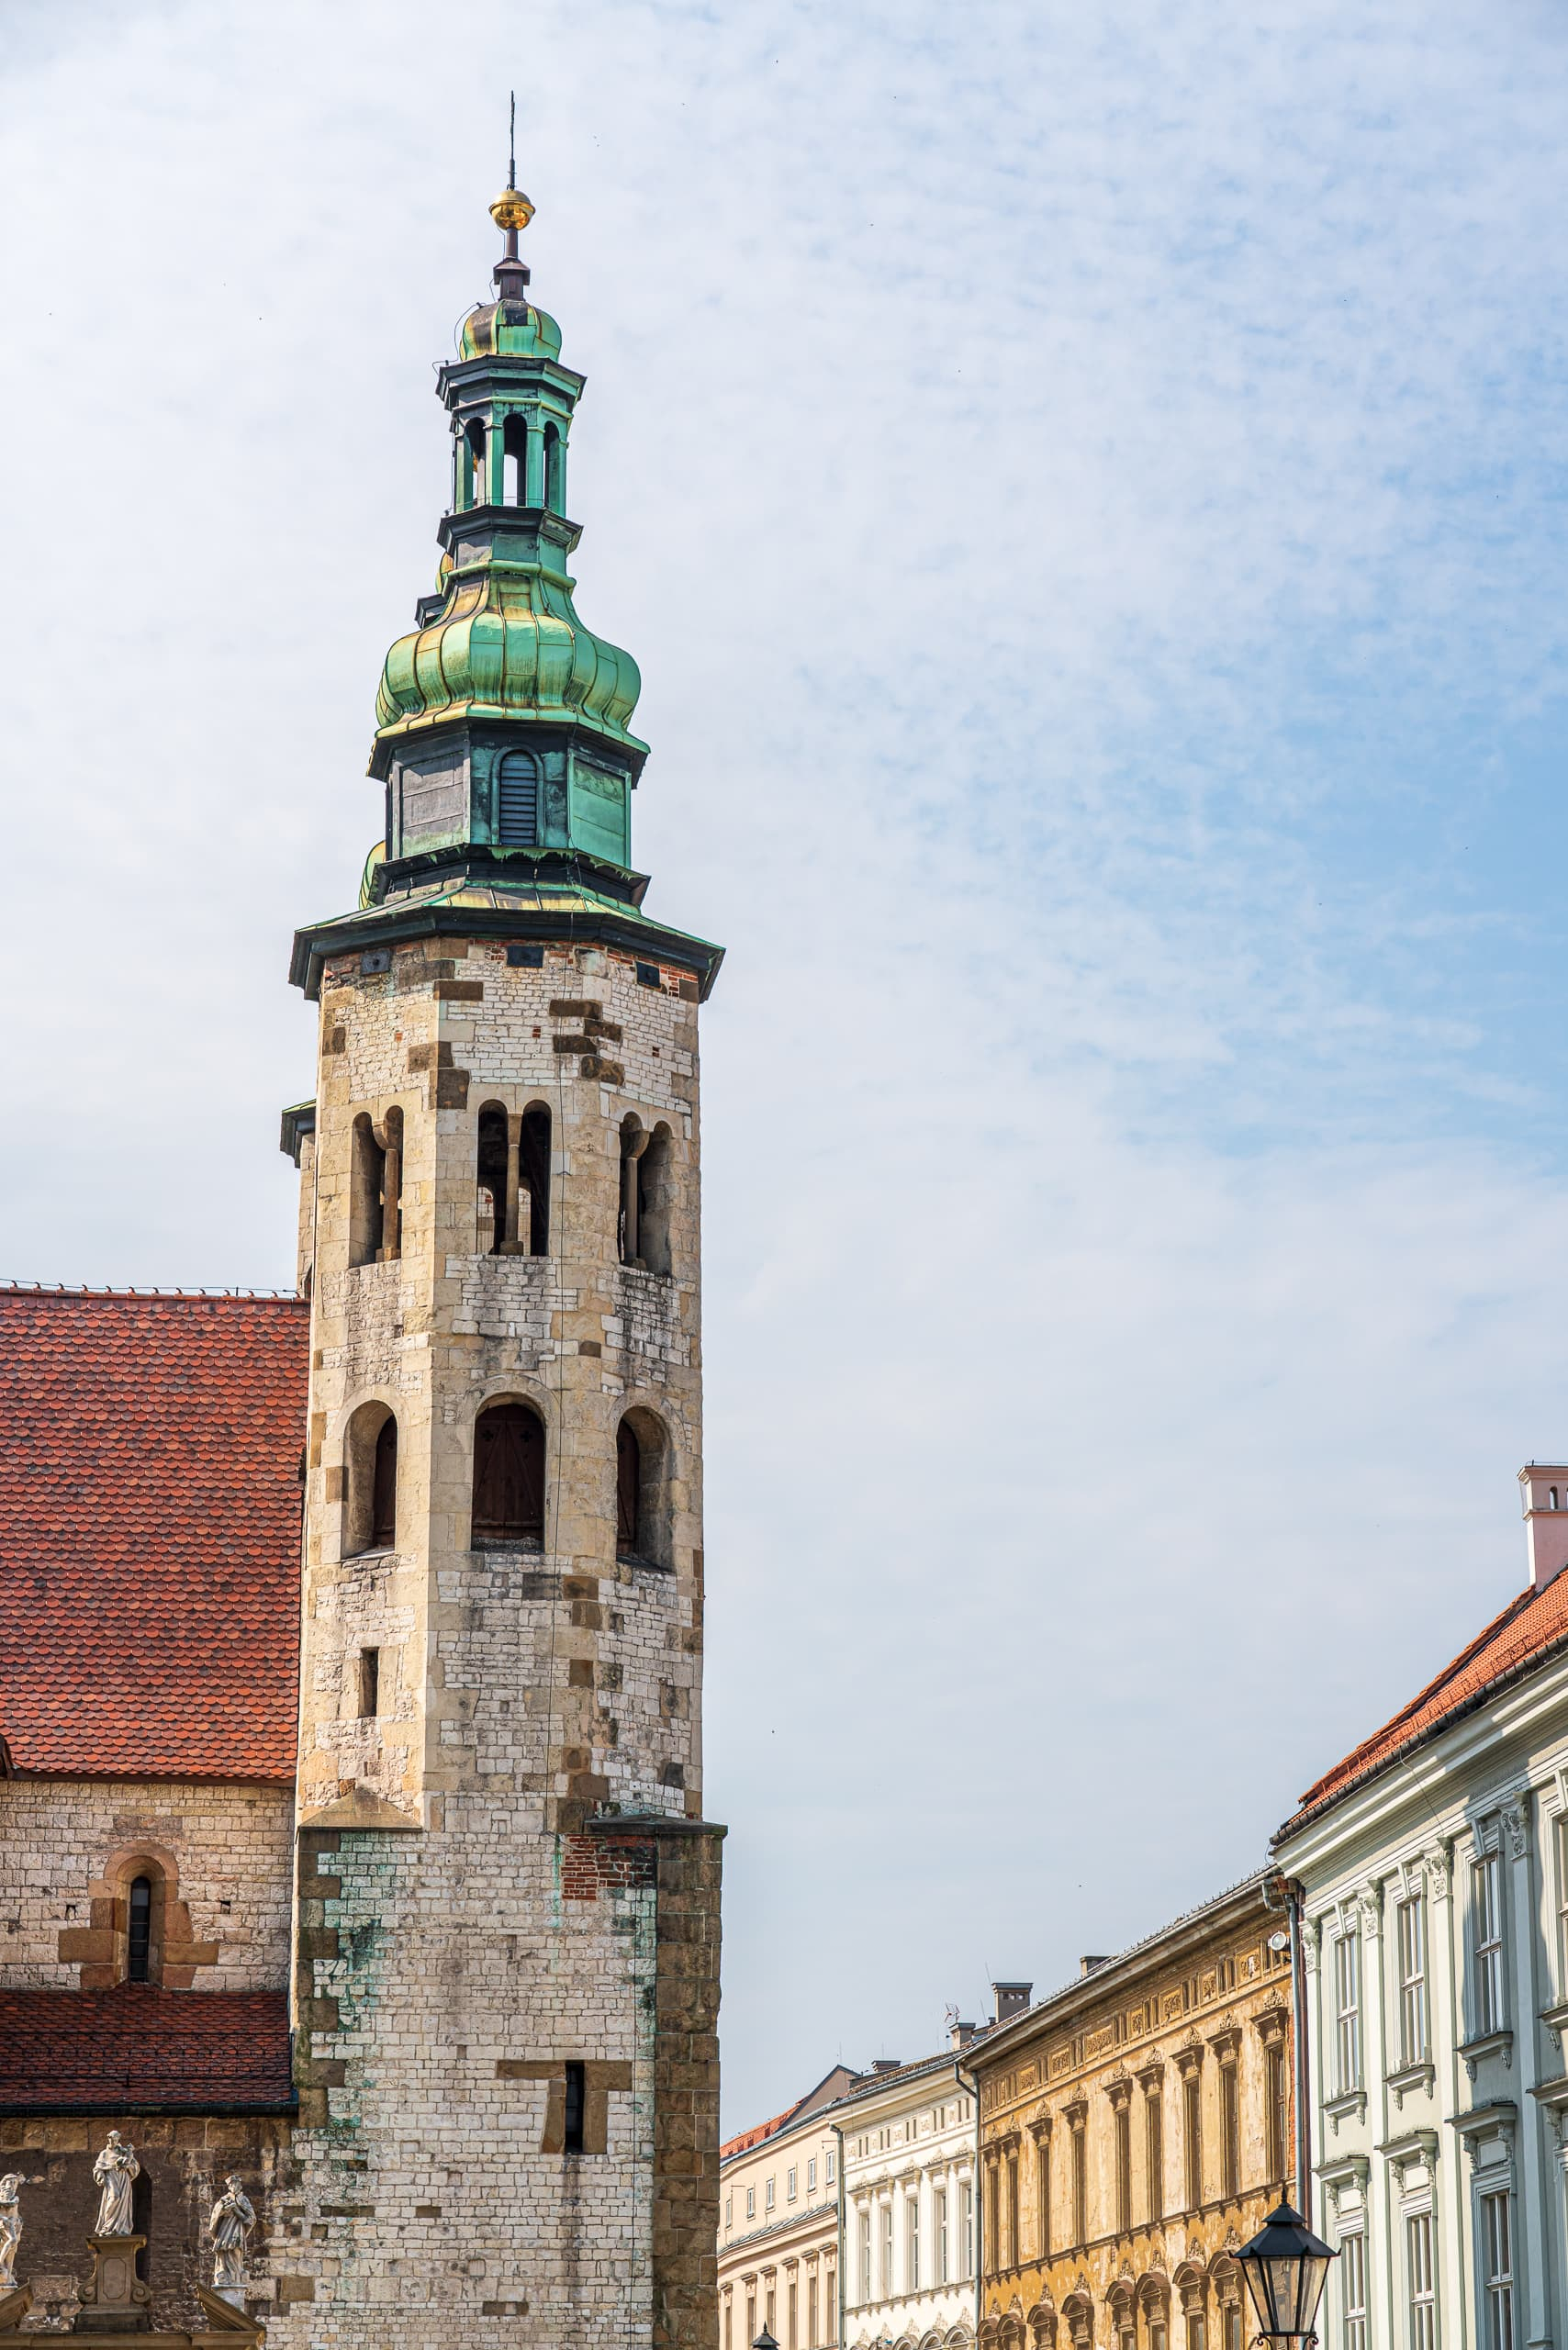 St. Andrews Church Kraków | f/8 1/500sec ISO-100 78mm  | ILCE-7RM3 | 2019-06-21 07:21:28